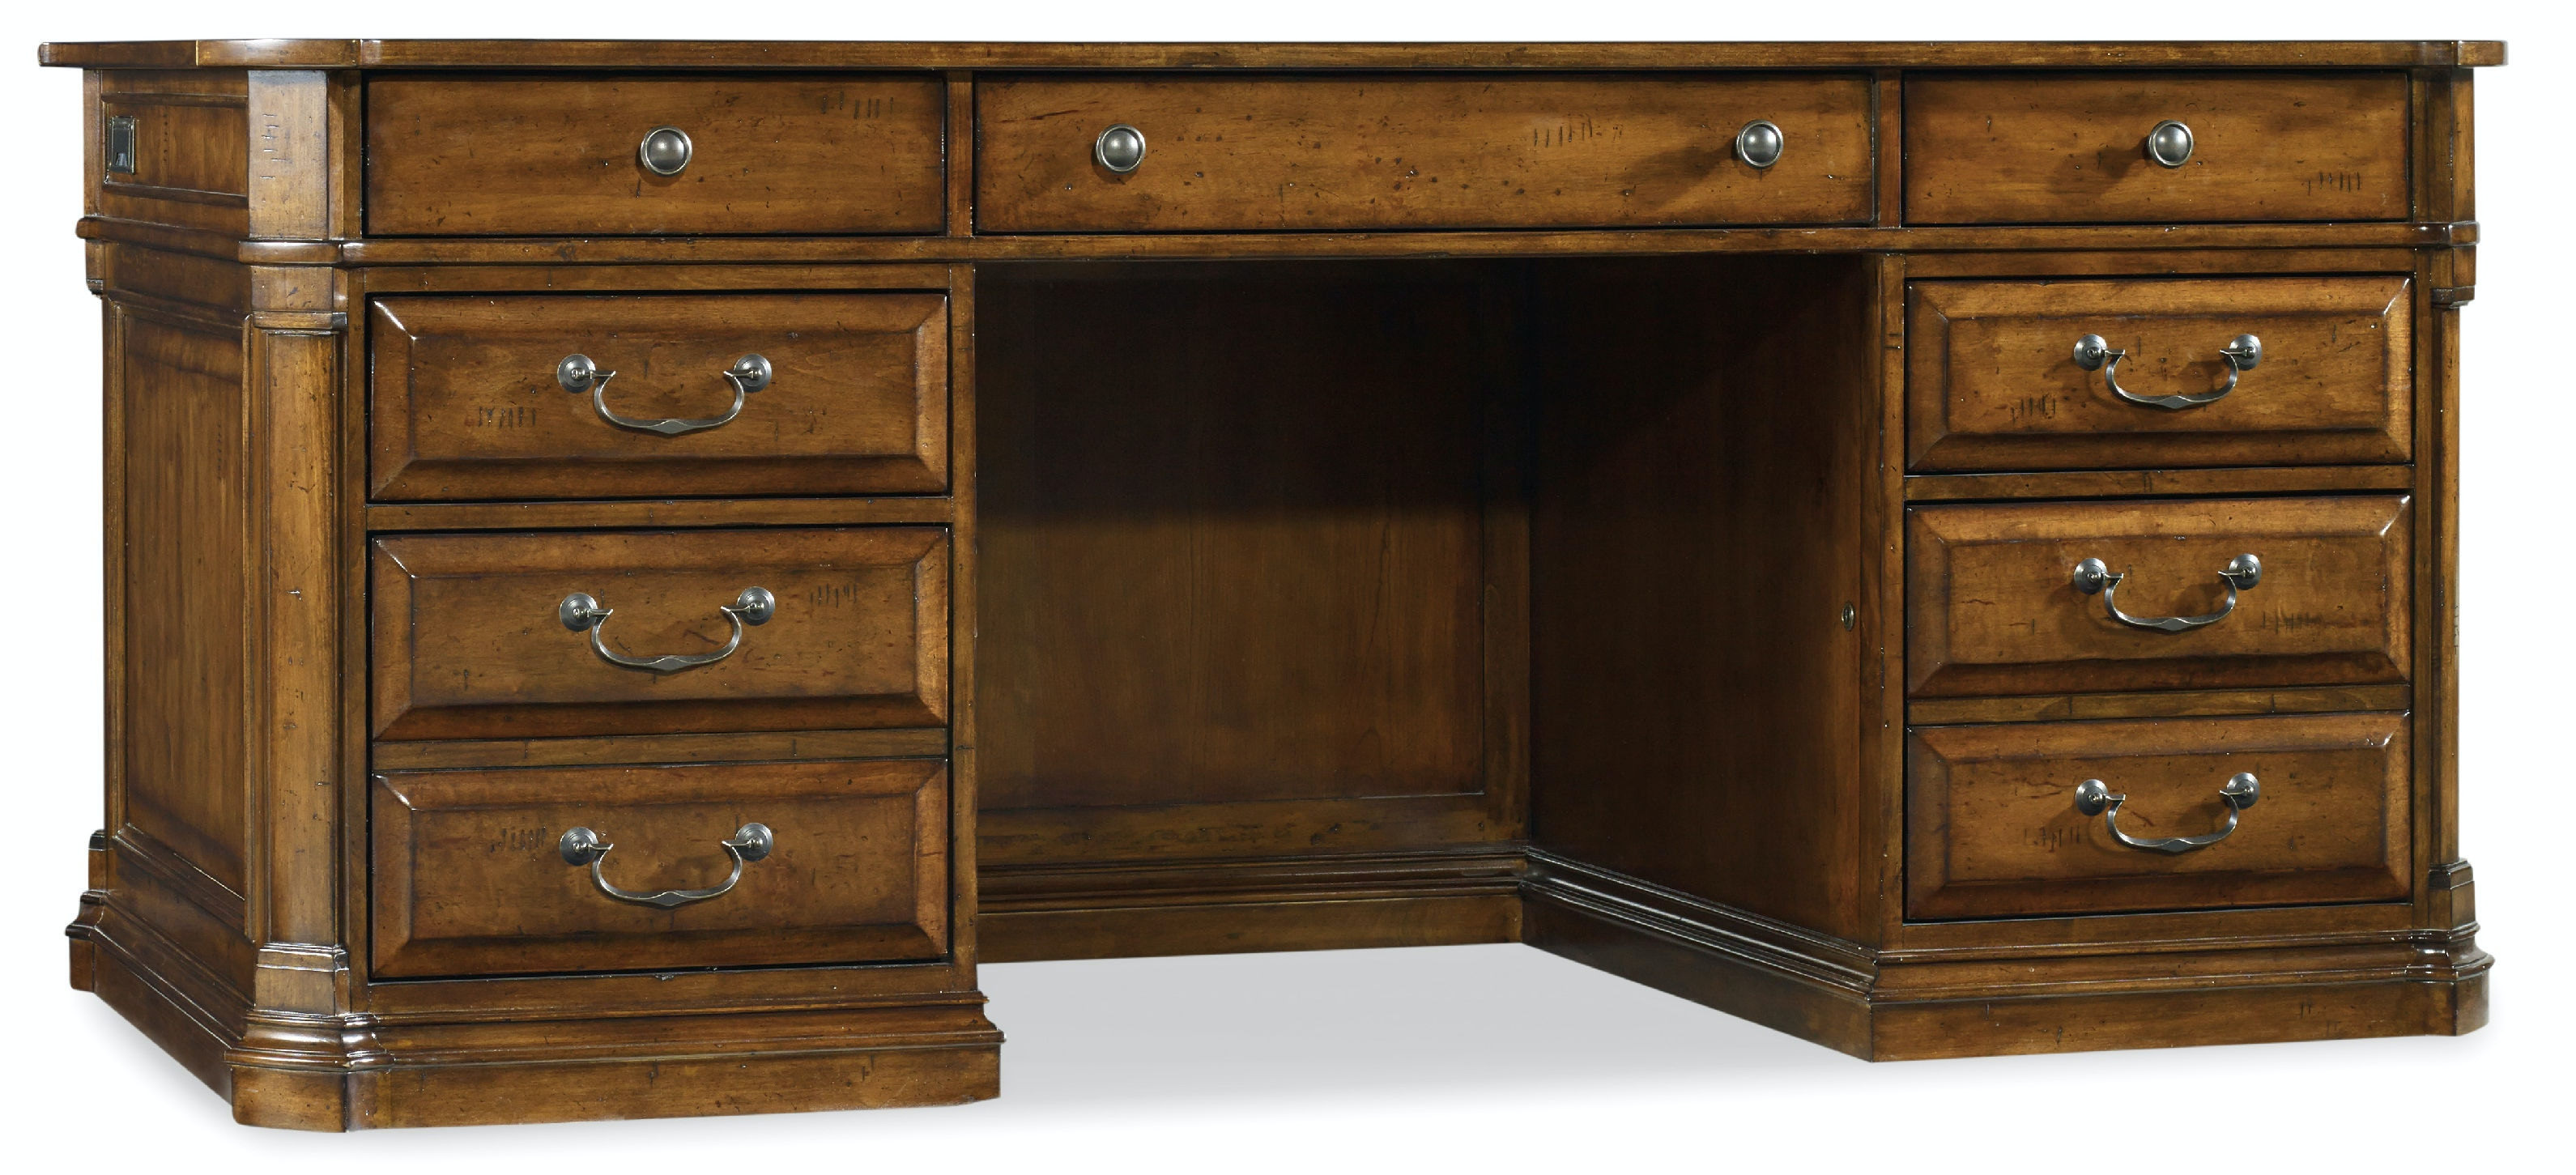 Tynecastle Executive Desk 5323-10563